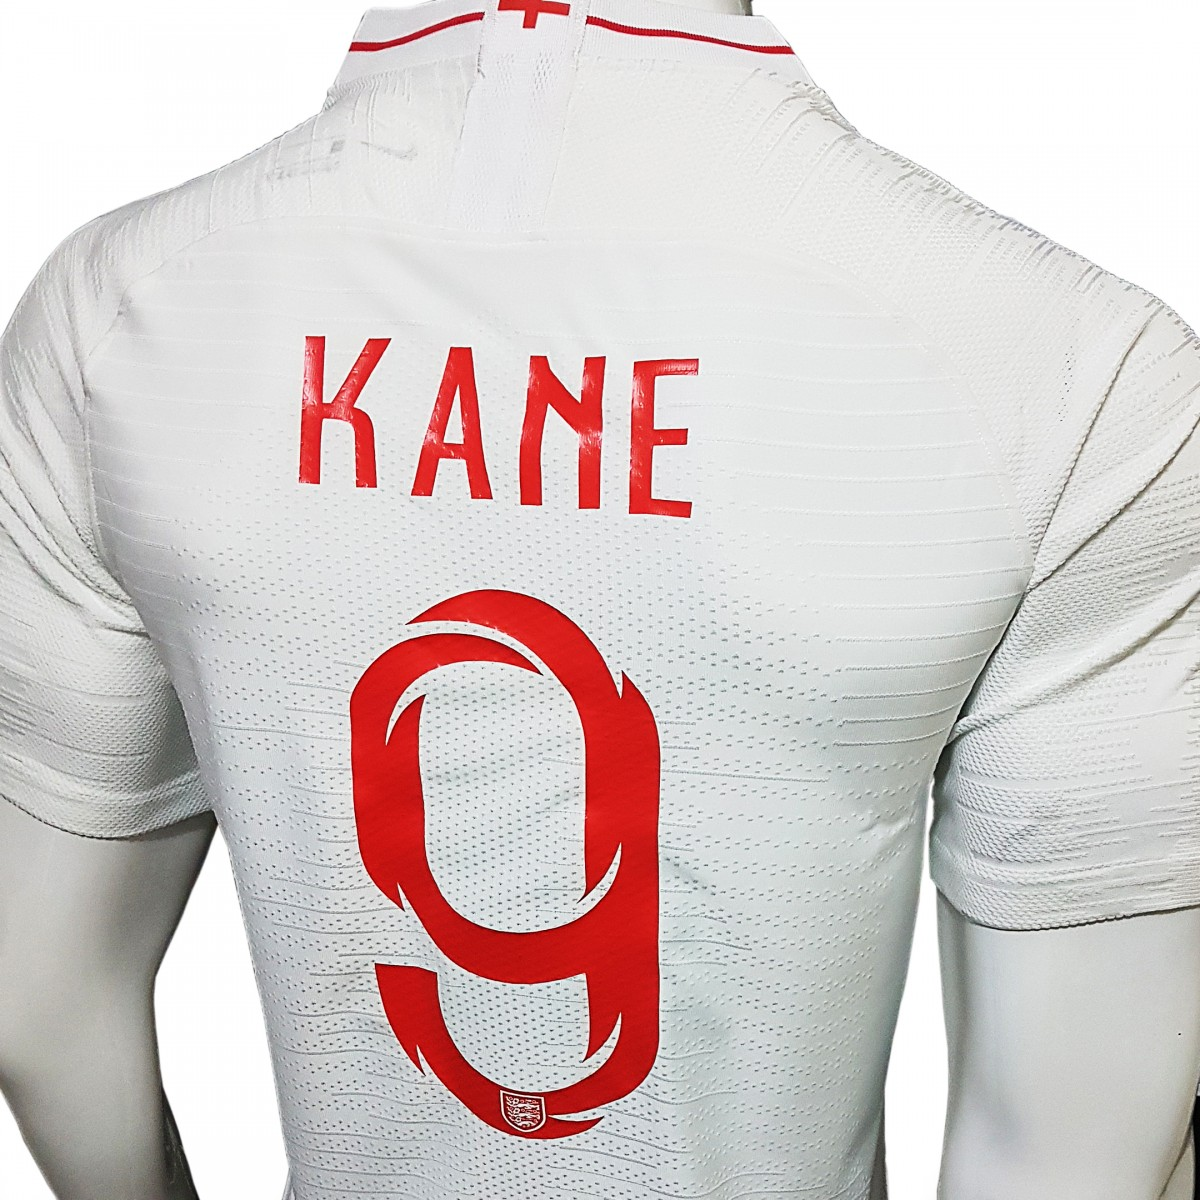 2889b6c15 Camisa Oficial Inglaterra Home 2018 - Harry Kane - M - Premiere Imports